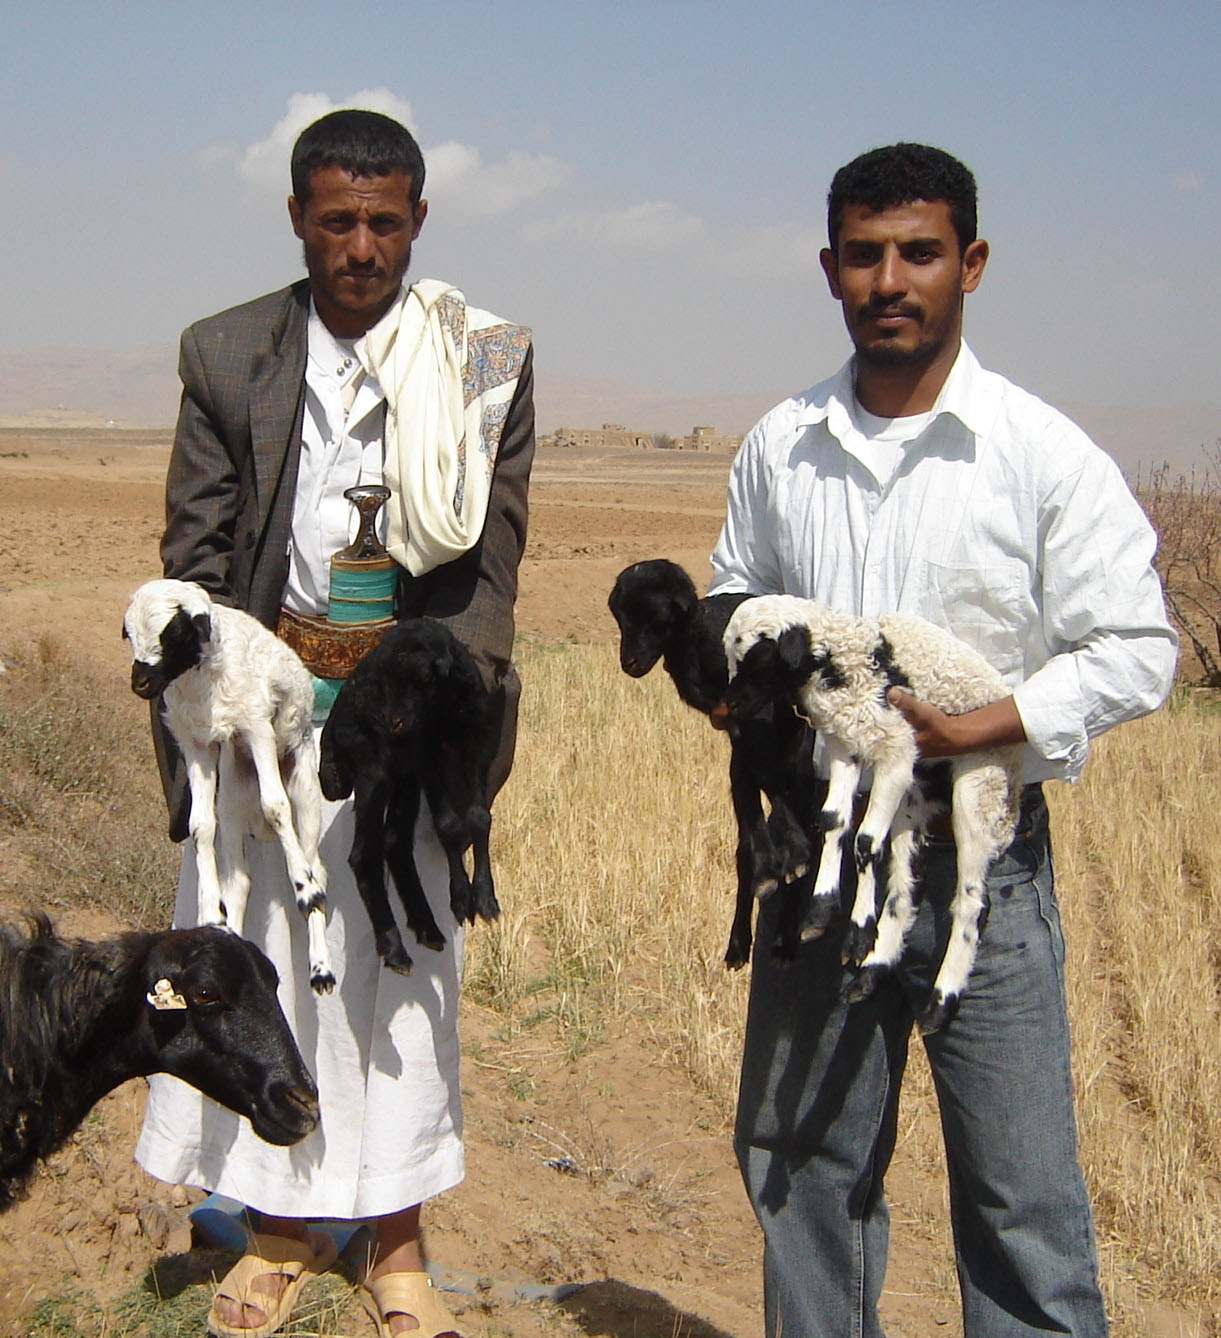 Mohamed Ahmed Alawili (left) and a local USAID-funded agricultural support program's extension agent proudly display a quadruple